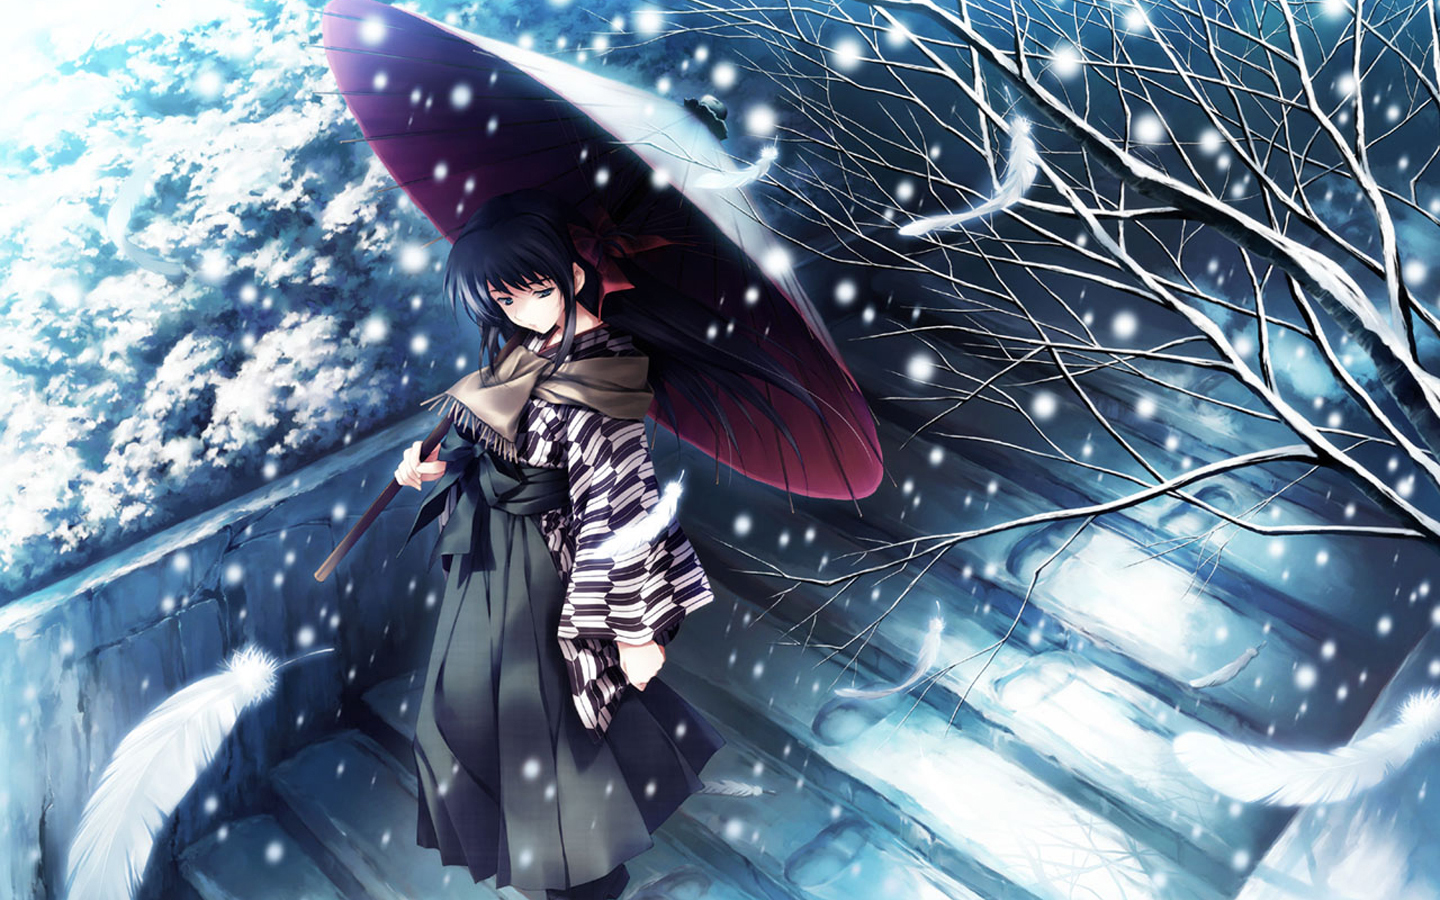 Anime Girl Wallpapers HD wallpapers   Anime Girl Wallpapers 1440x900